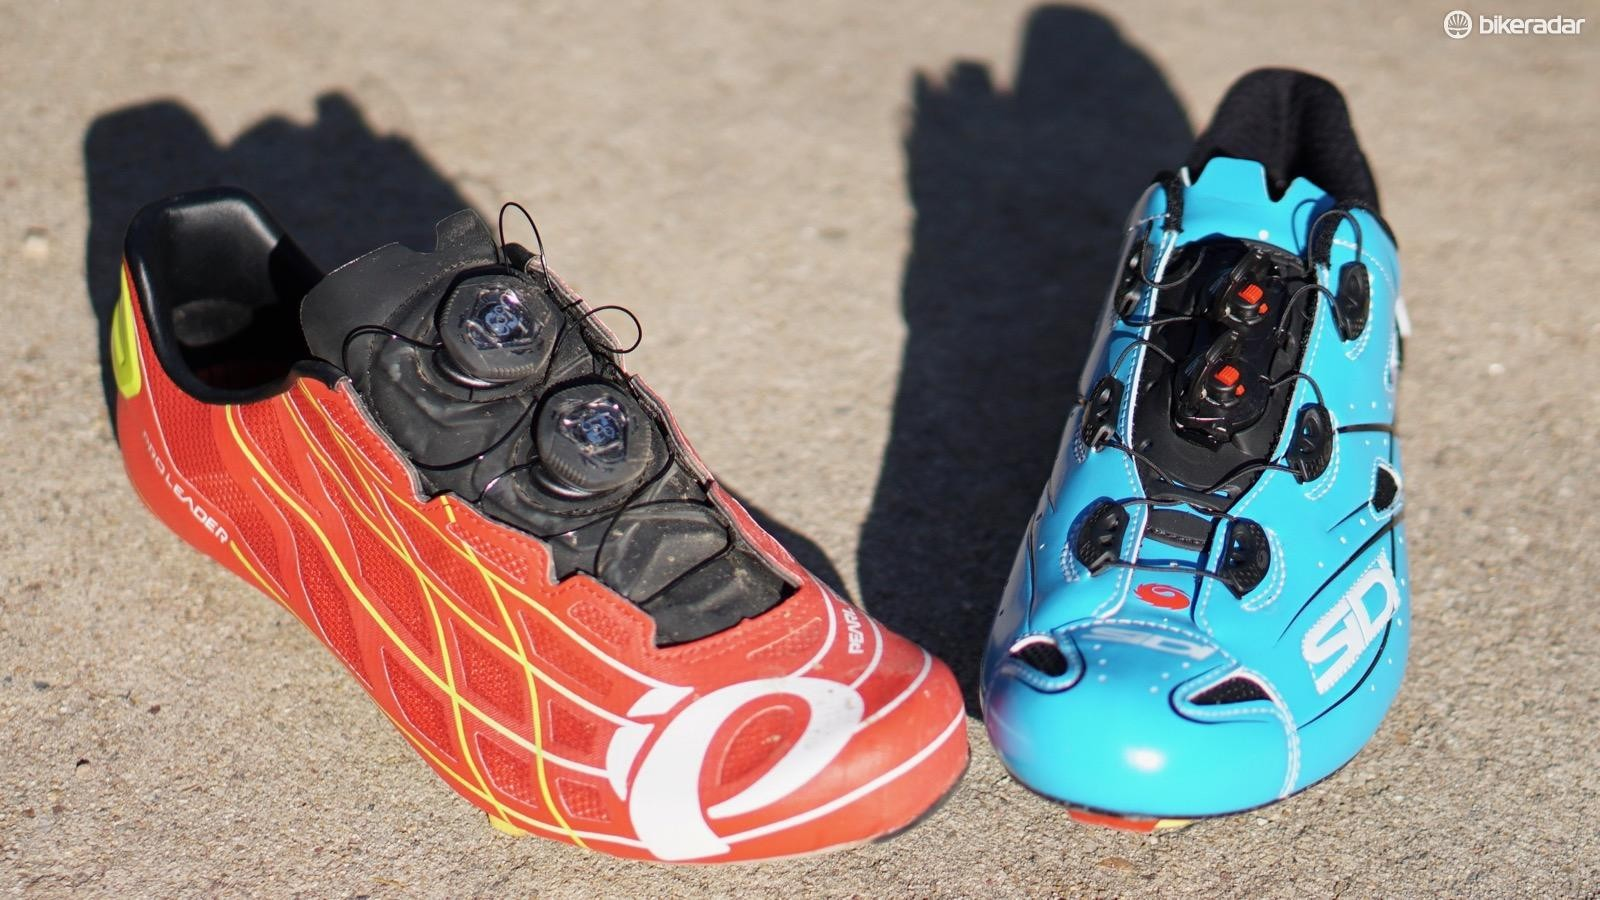 Sidi's Shot and Pearl's PRO Leader III have similar closure designs, but differ wildly in fit and feel